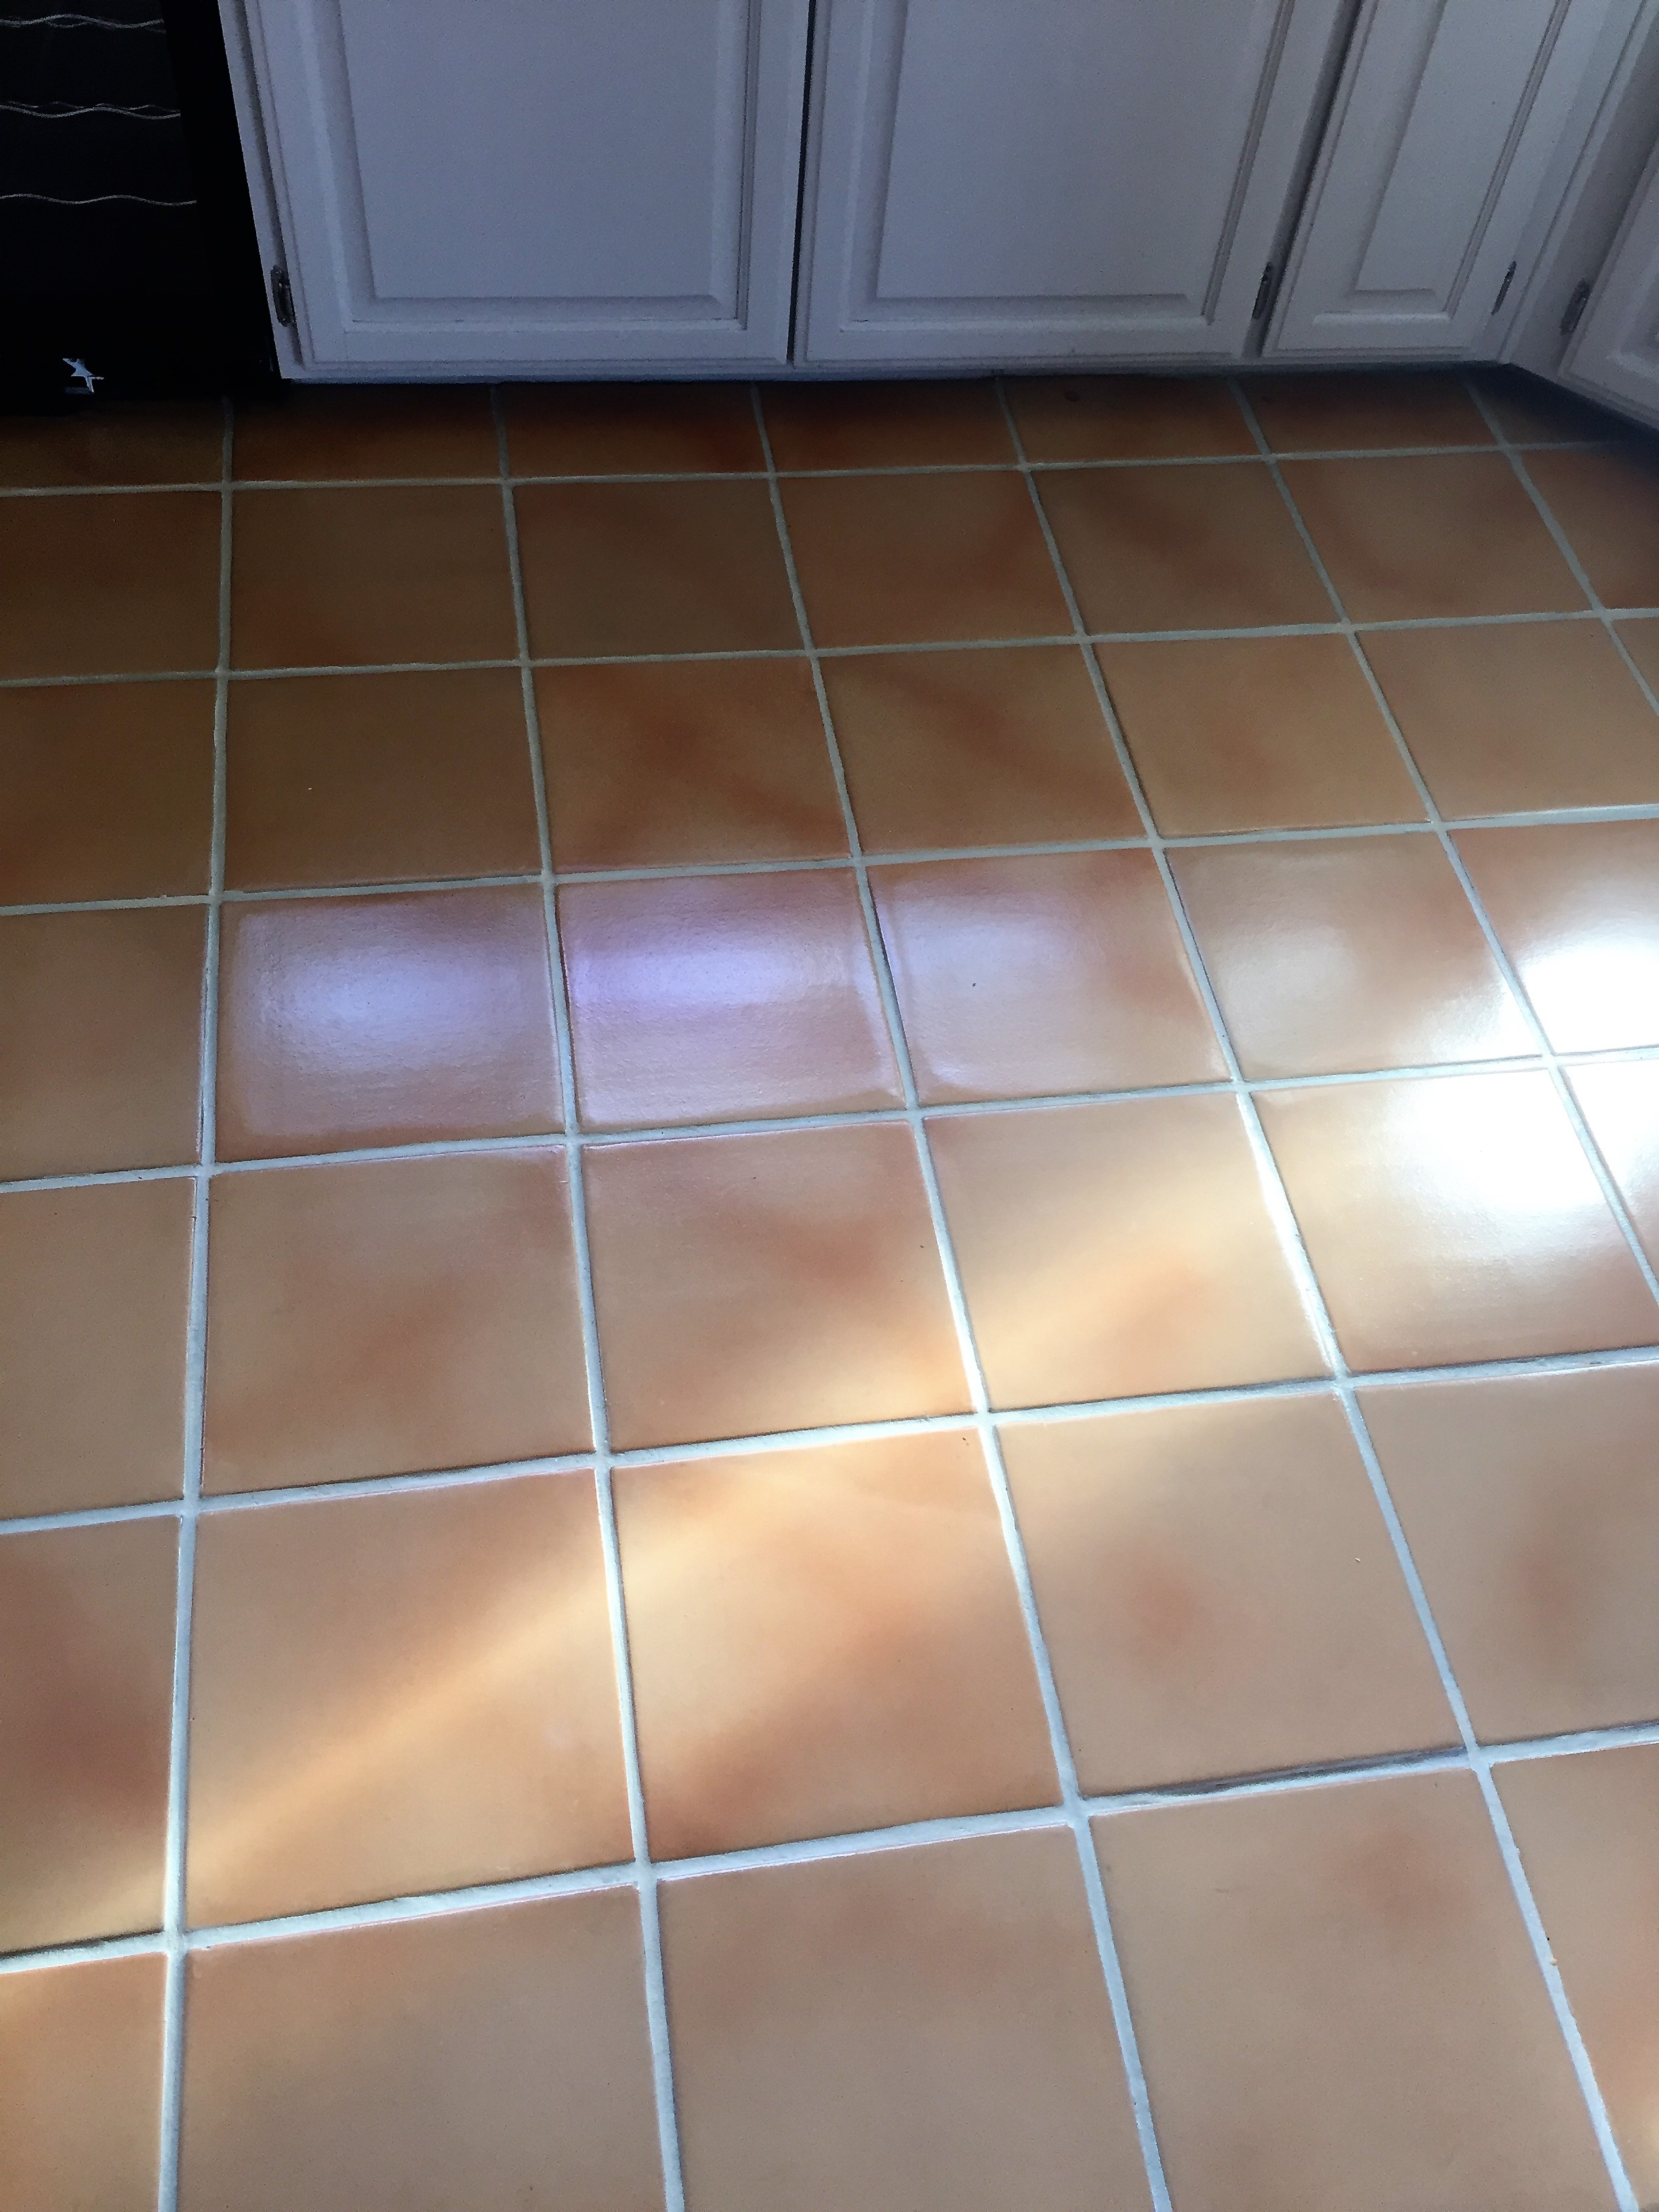 saltillokitchen after being stained and sealed with wetlook.JPG